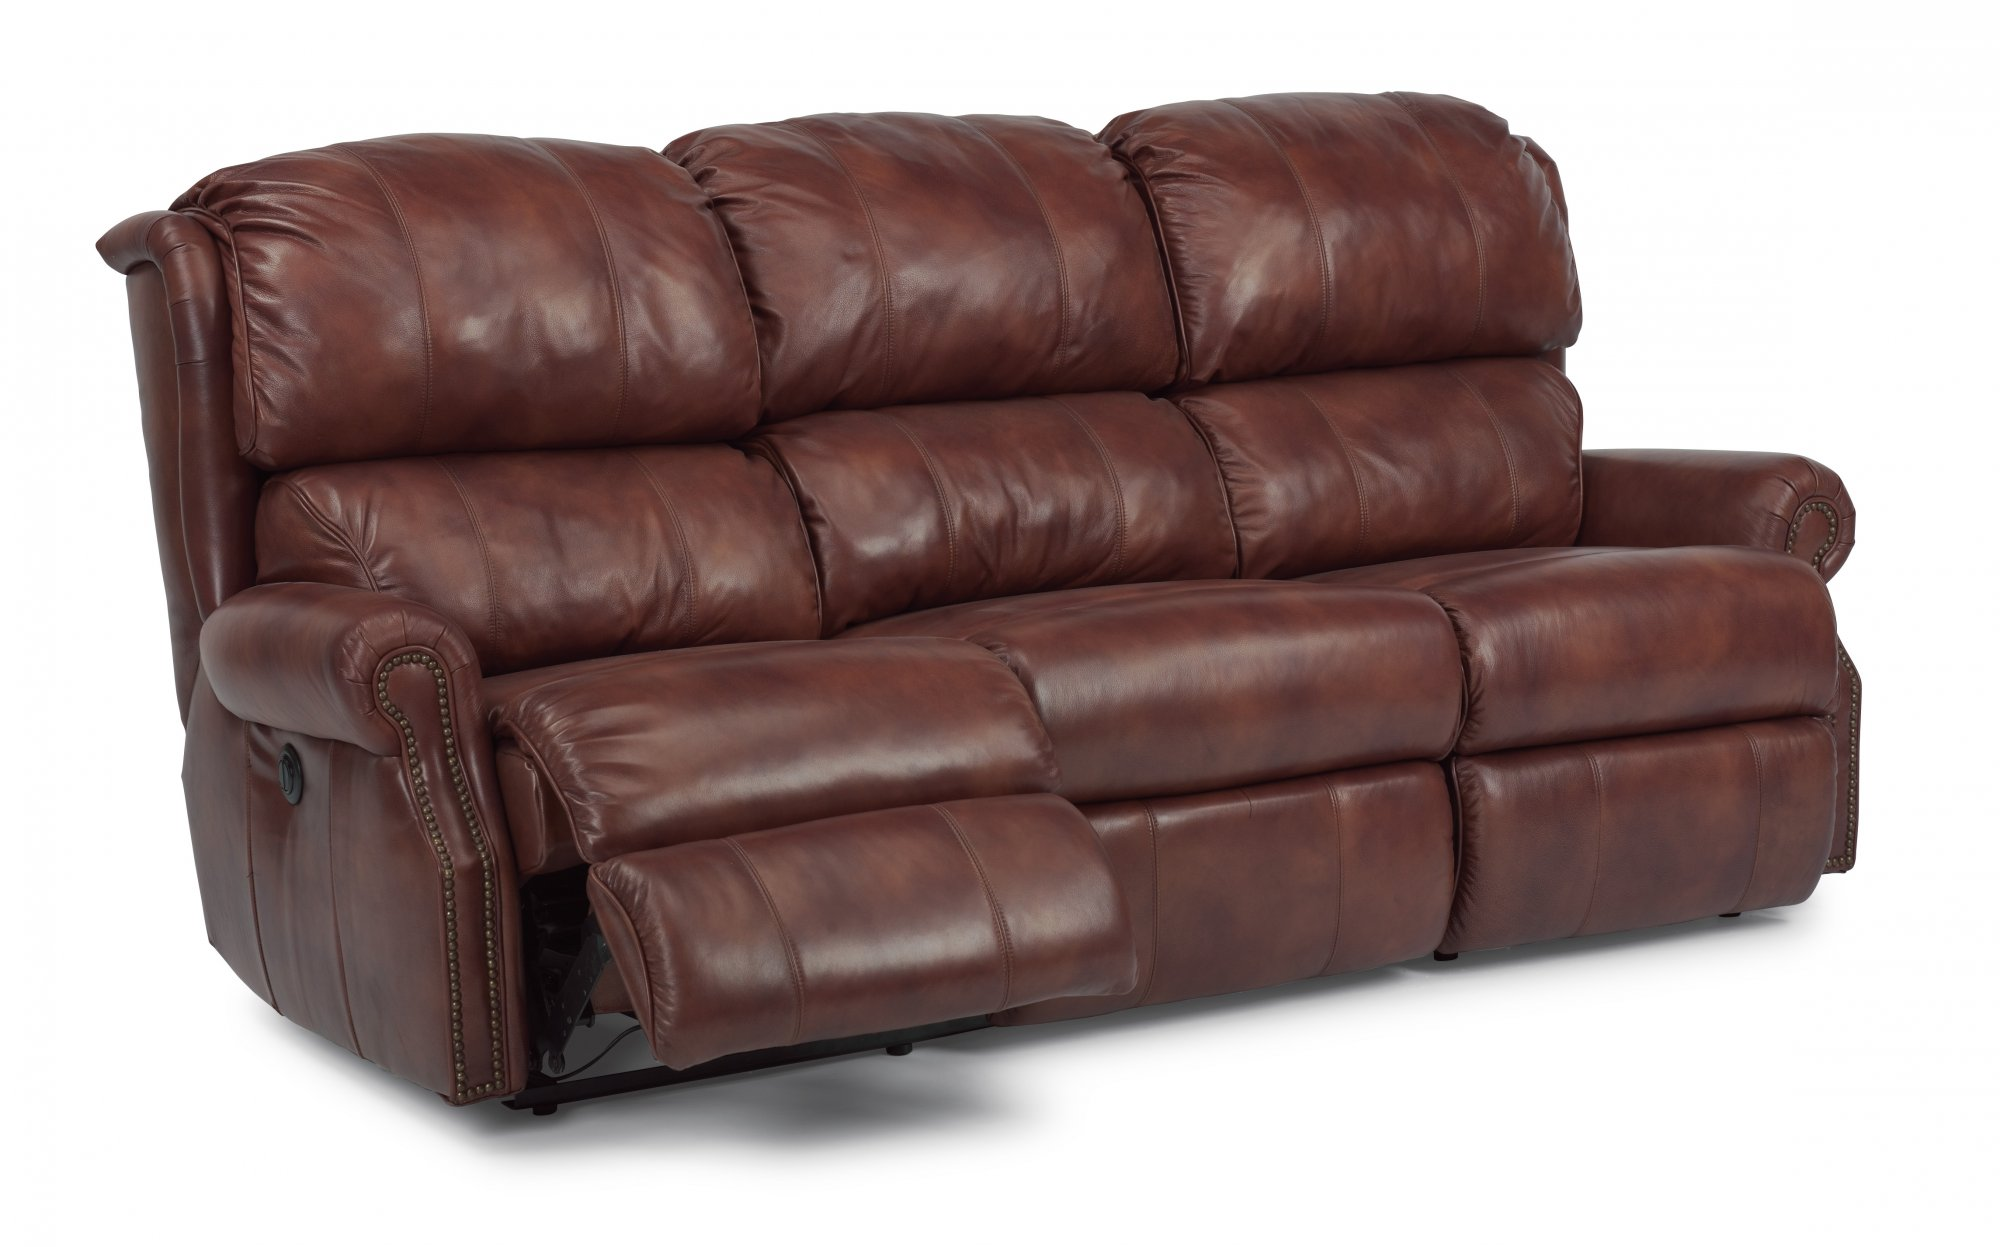 Leather Power Reclining Sofa  sc 1 st  Flexsteel & Comfort Zone | Flexsteel.com islam-shia.org